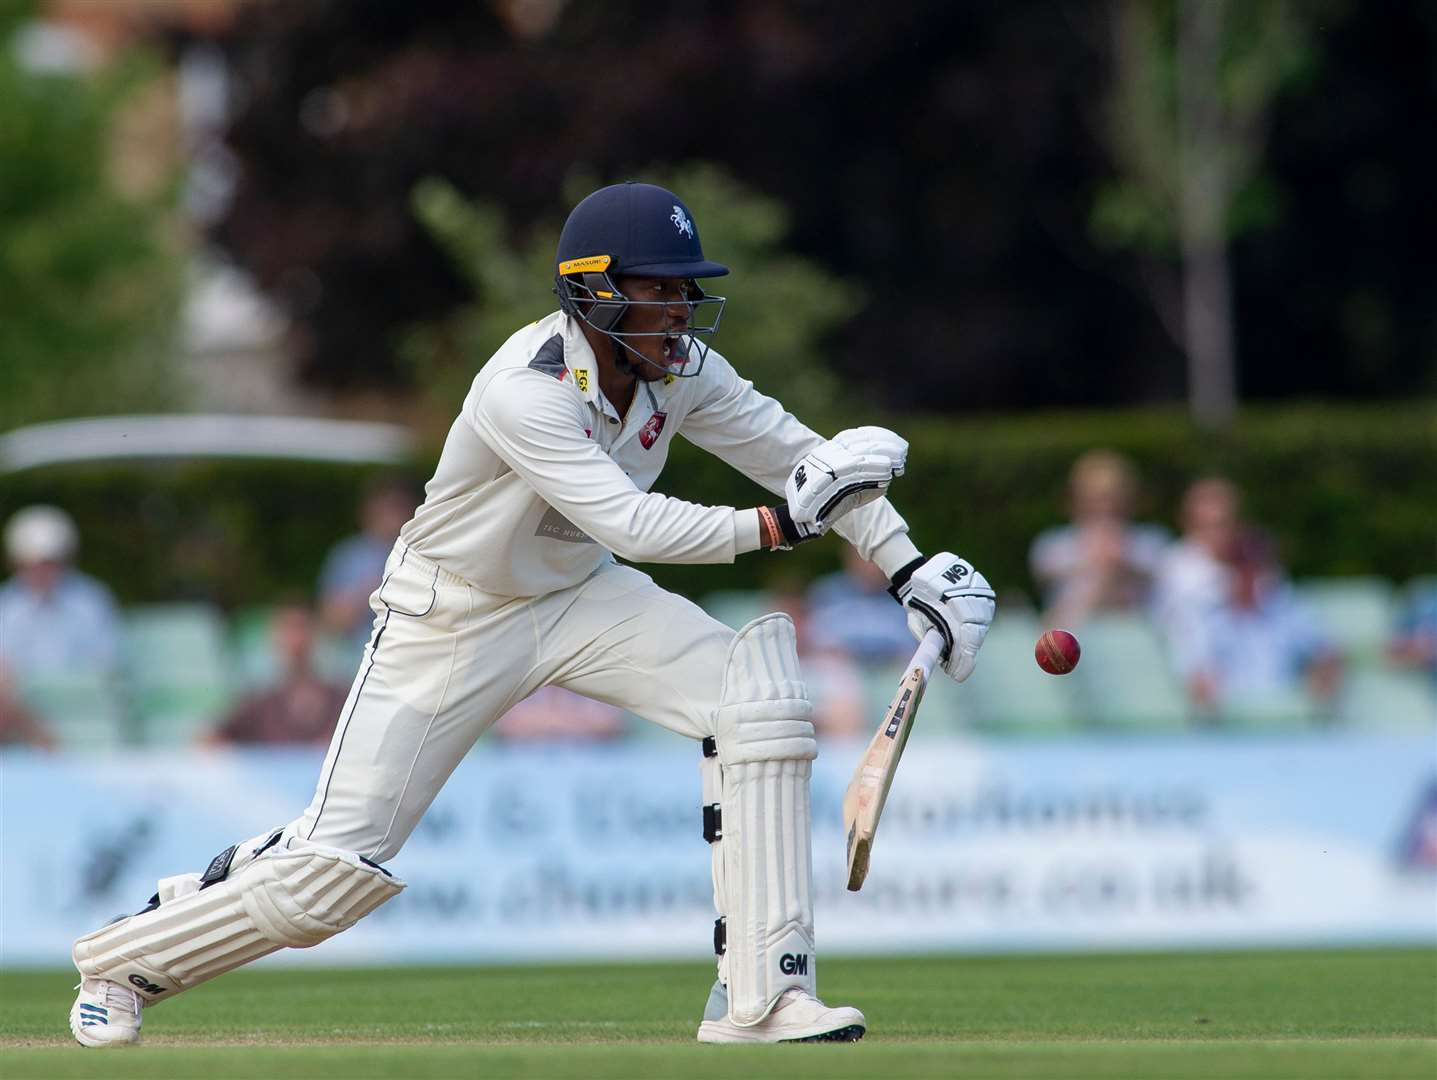 Daniel Bell-Drummond in action against Warwickshire. Picture: Ady Kerry